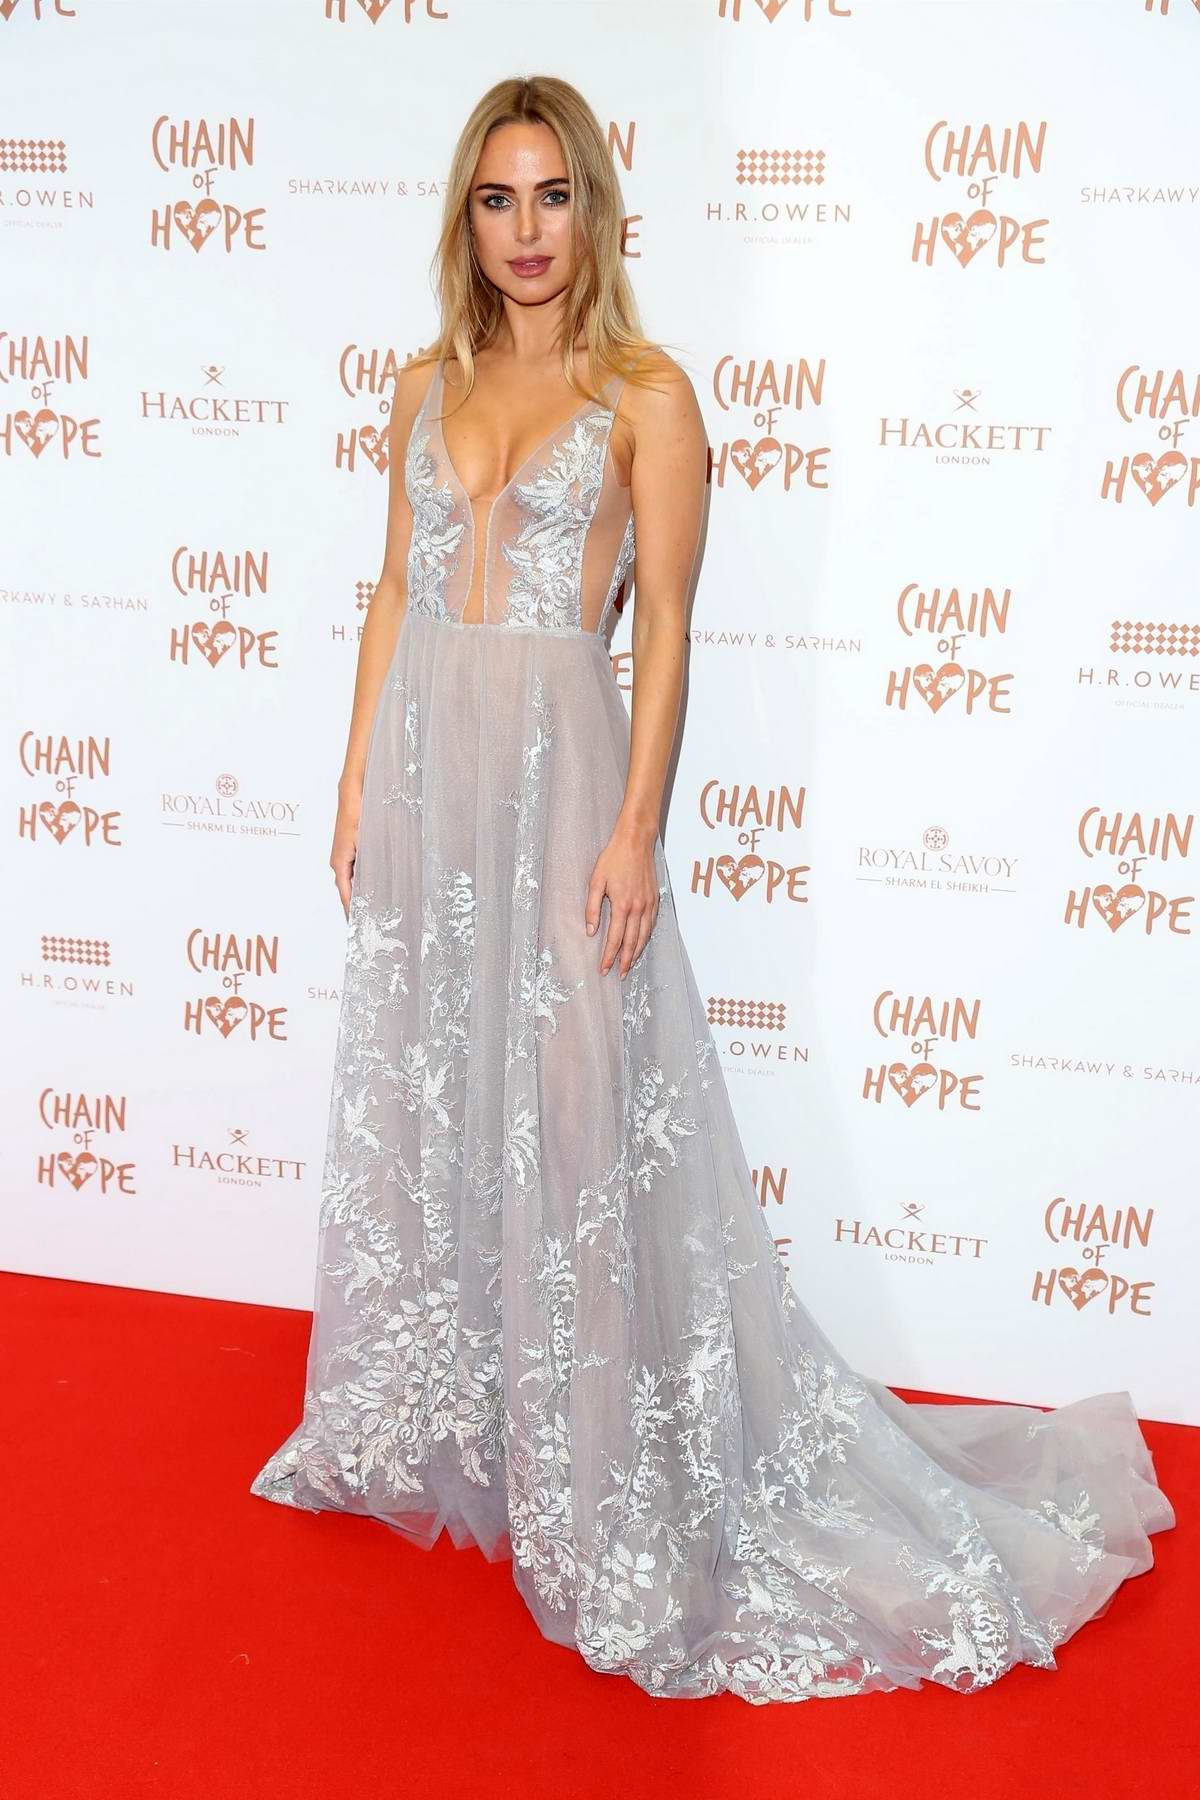 Kimberley Garner attends the 2019 Chain of Hope Ball in London, UK